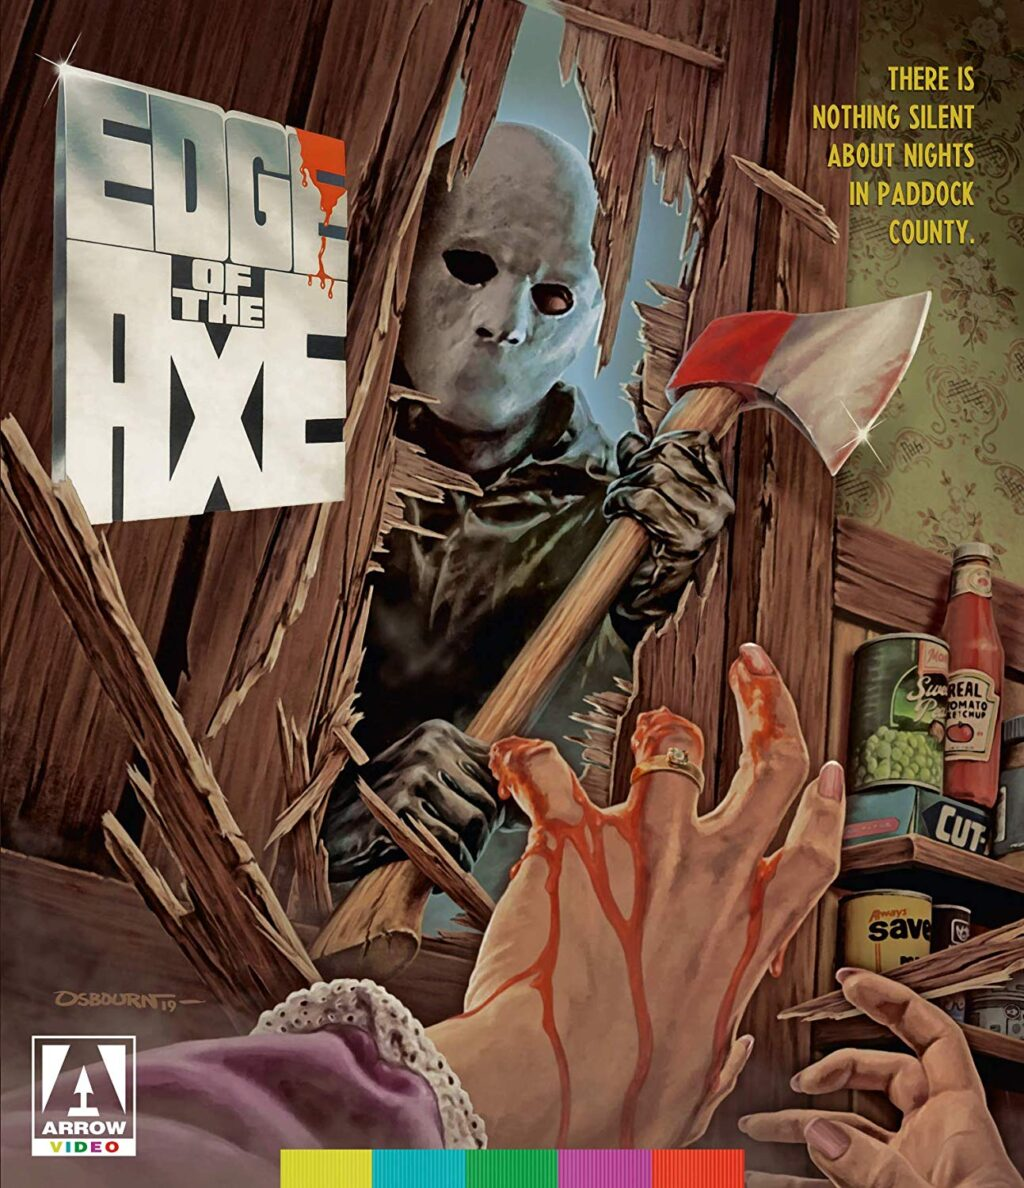 edge of the axe blu 1024x1188 - EDGE OF THE AXE Blu-ray Review - A Savage Spanish Slasher